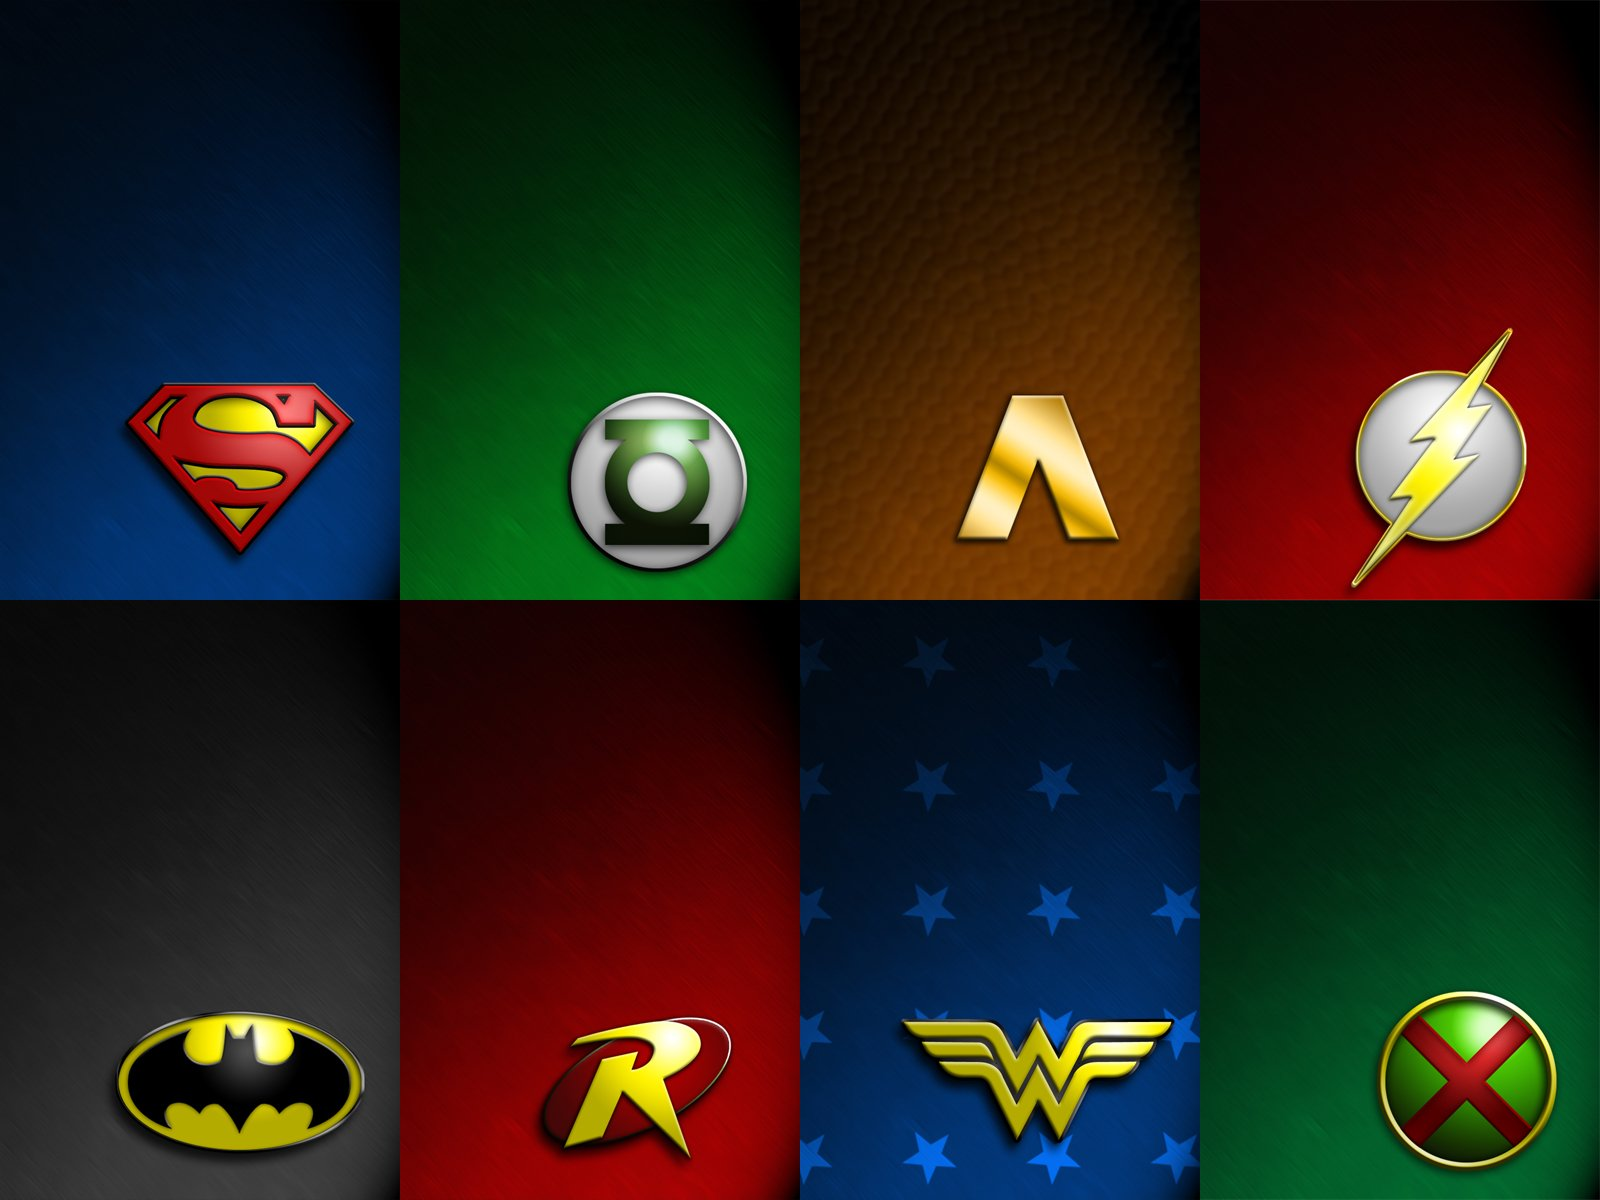 Silver Age Jla Logos Wallpaper And Background Image 1600x1200 Id